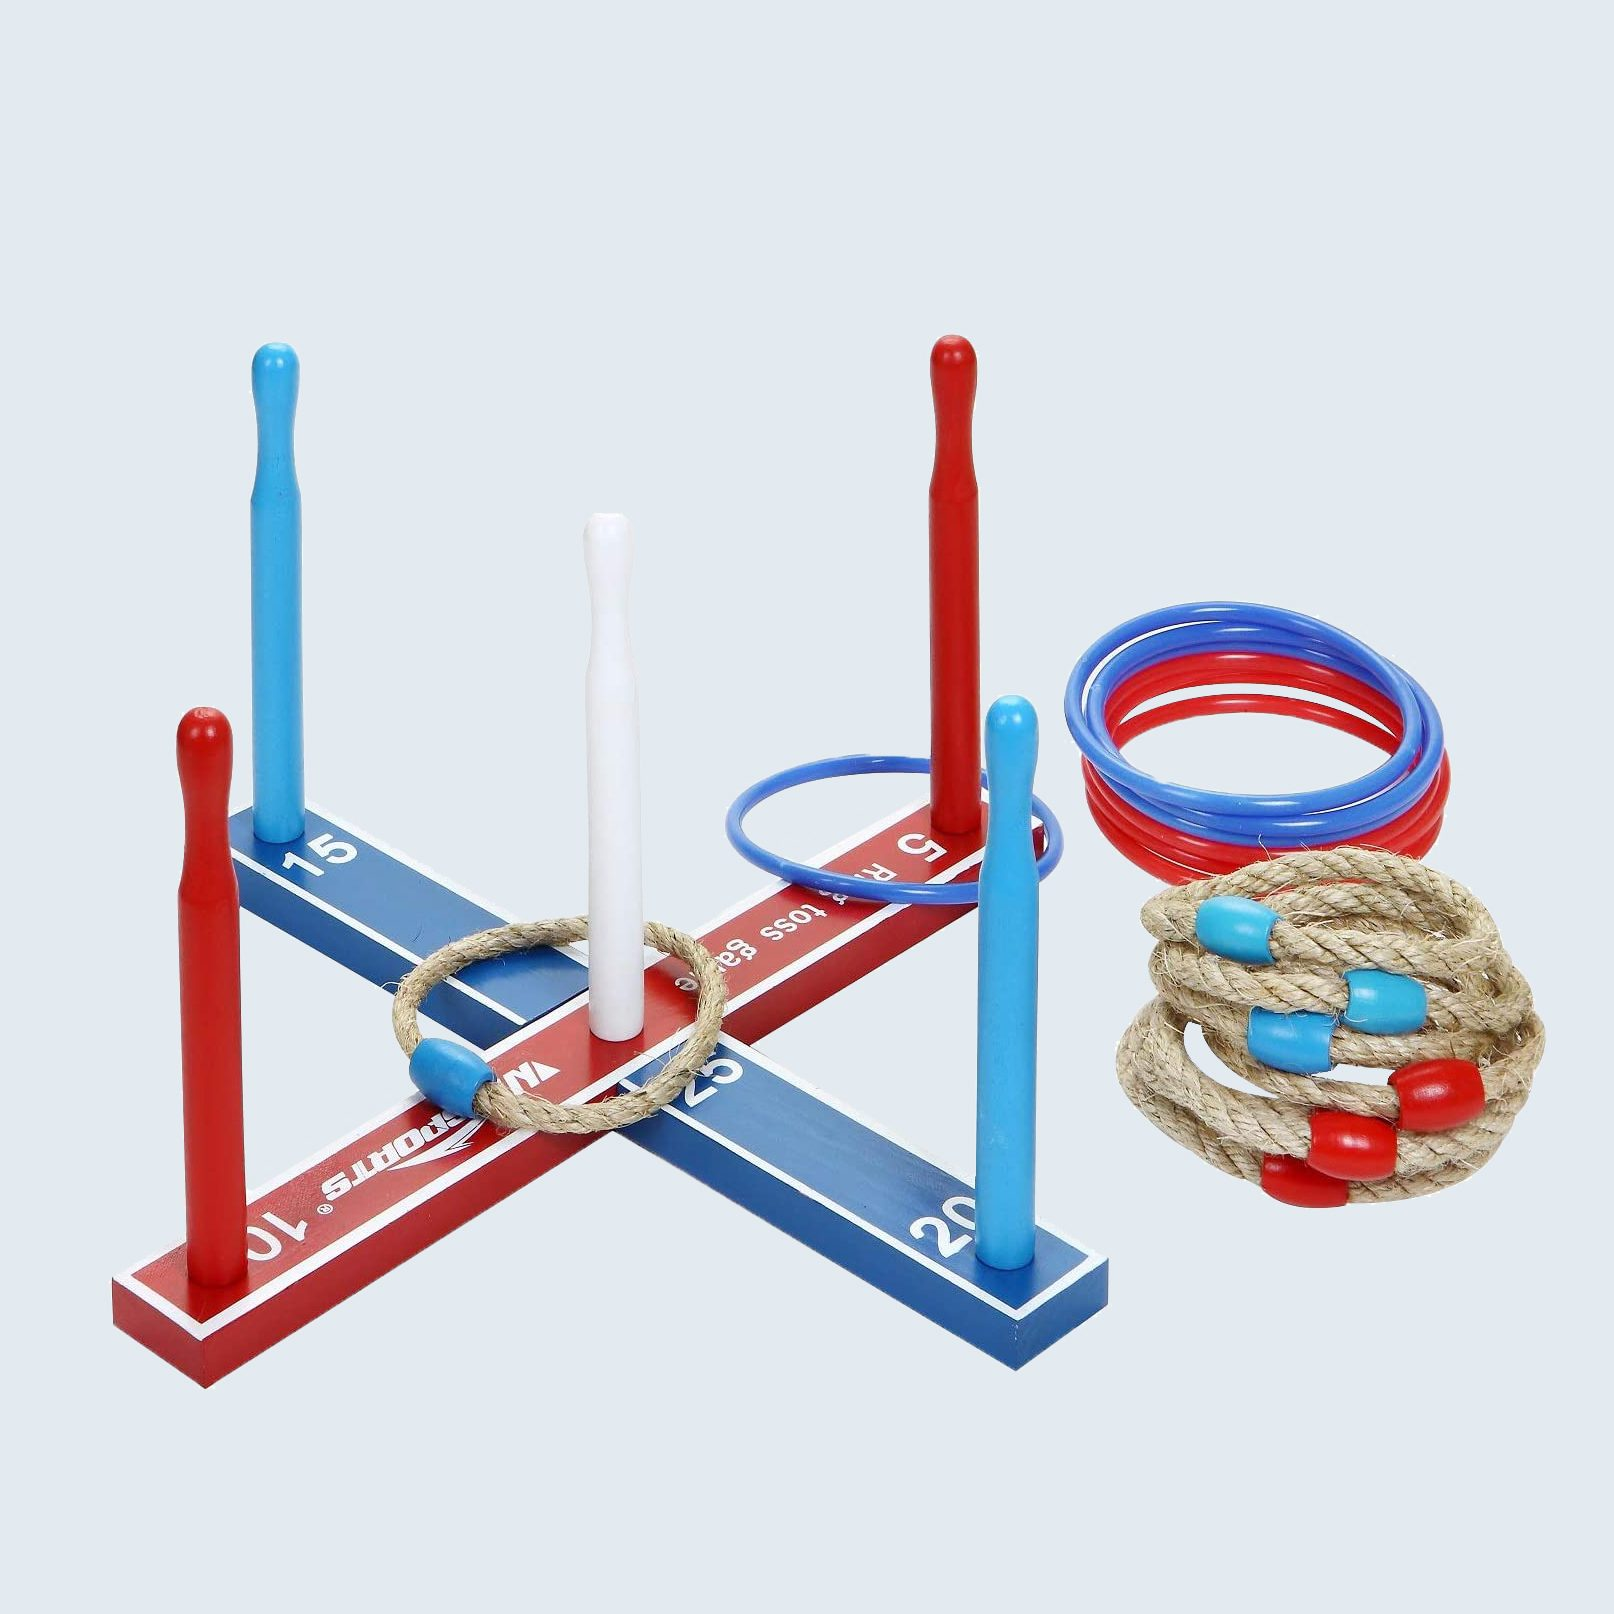 Red, white, and blue ring toss